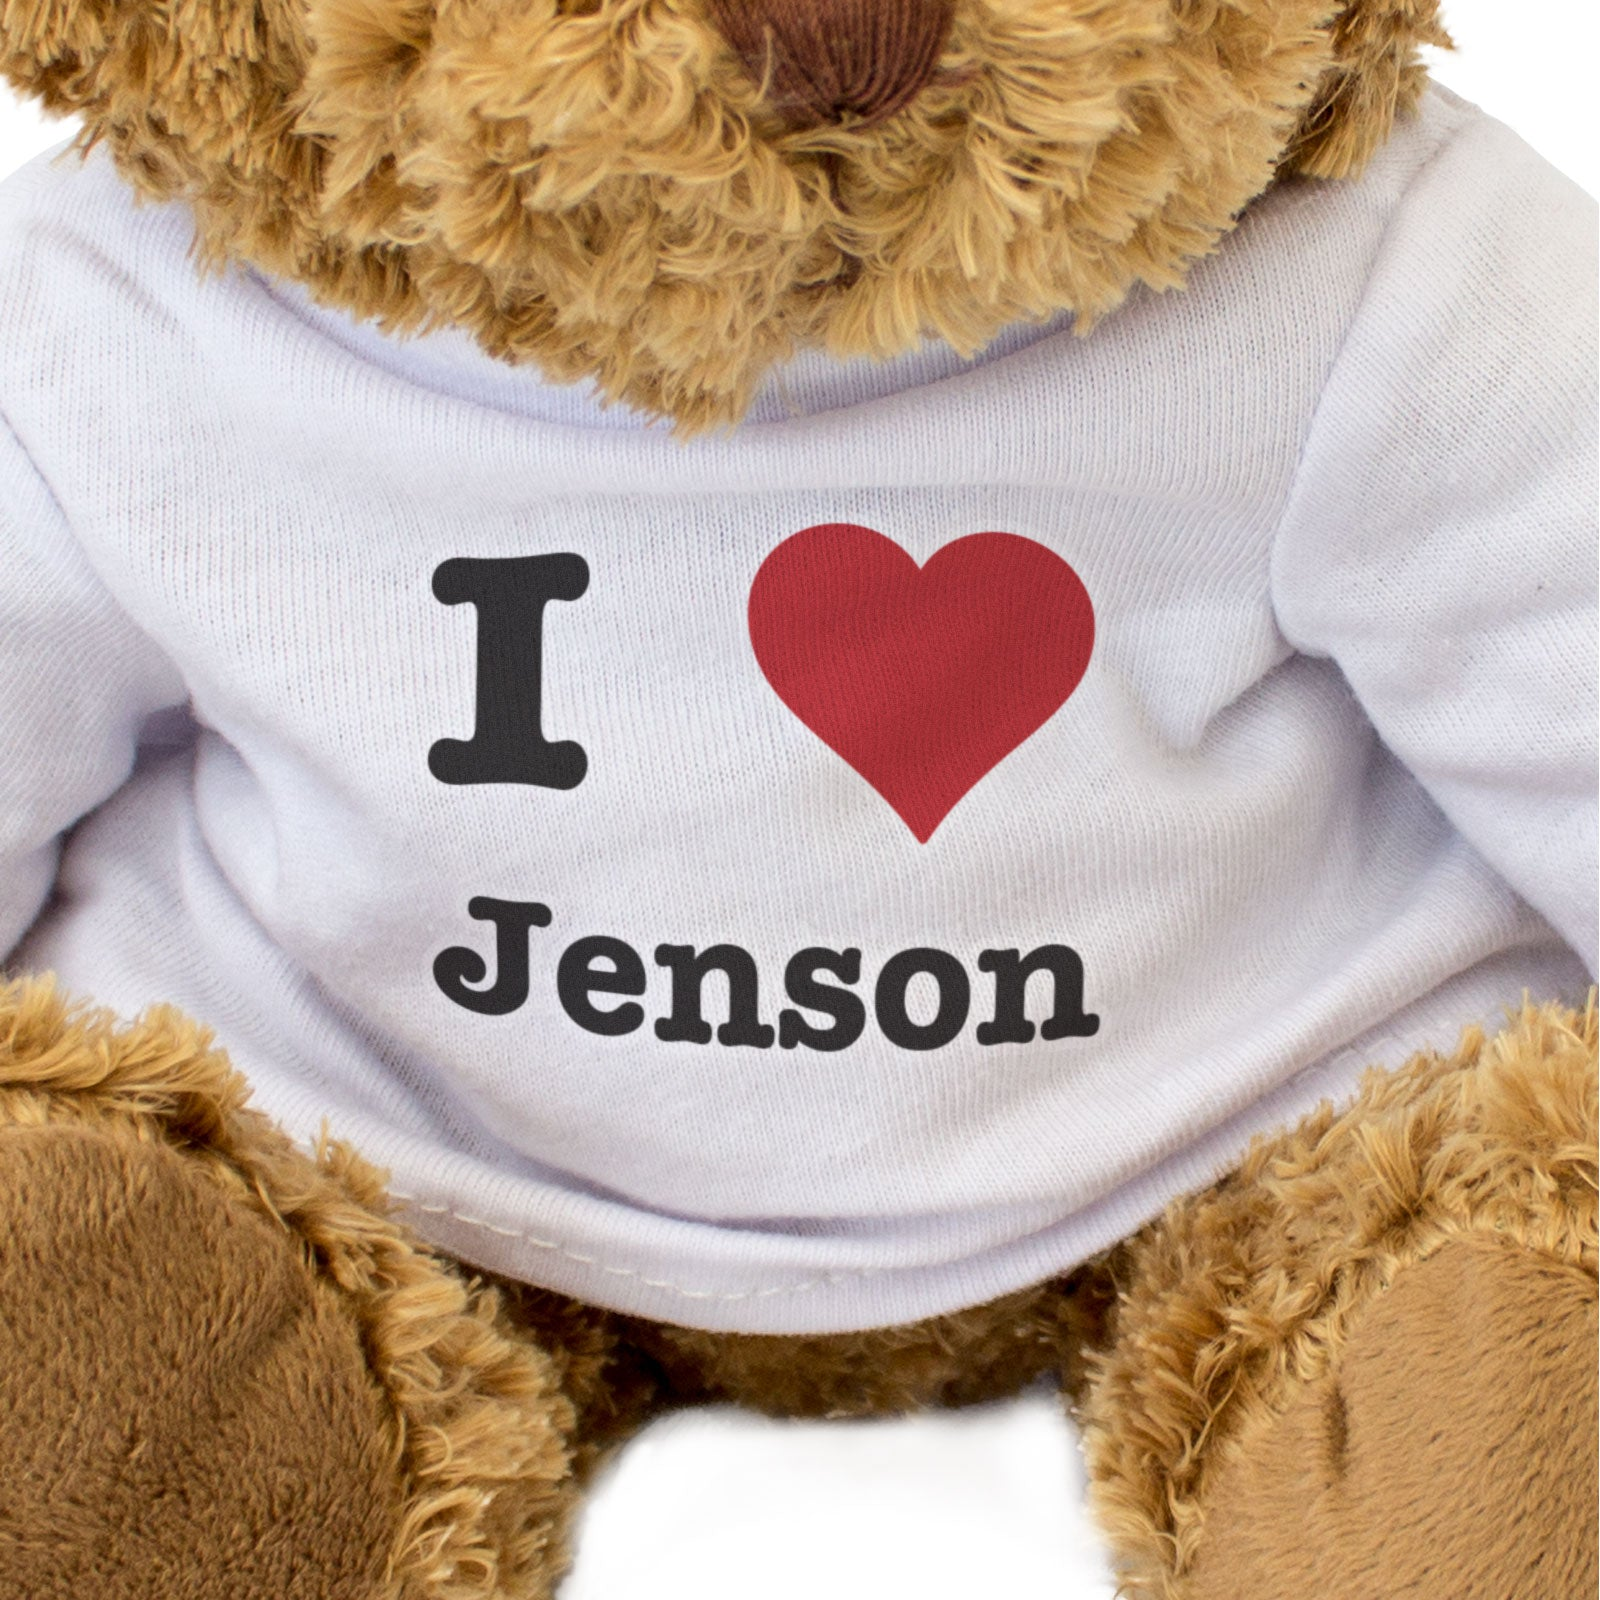 I Love Jenson - Teddy Bear